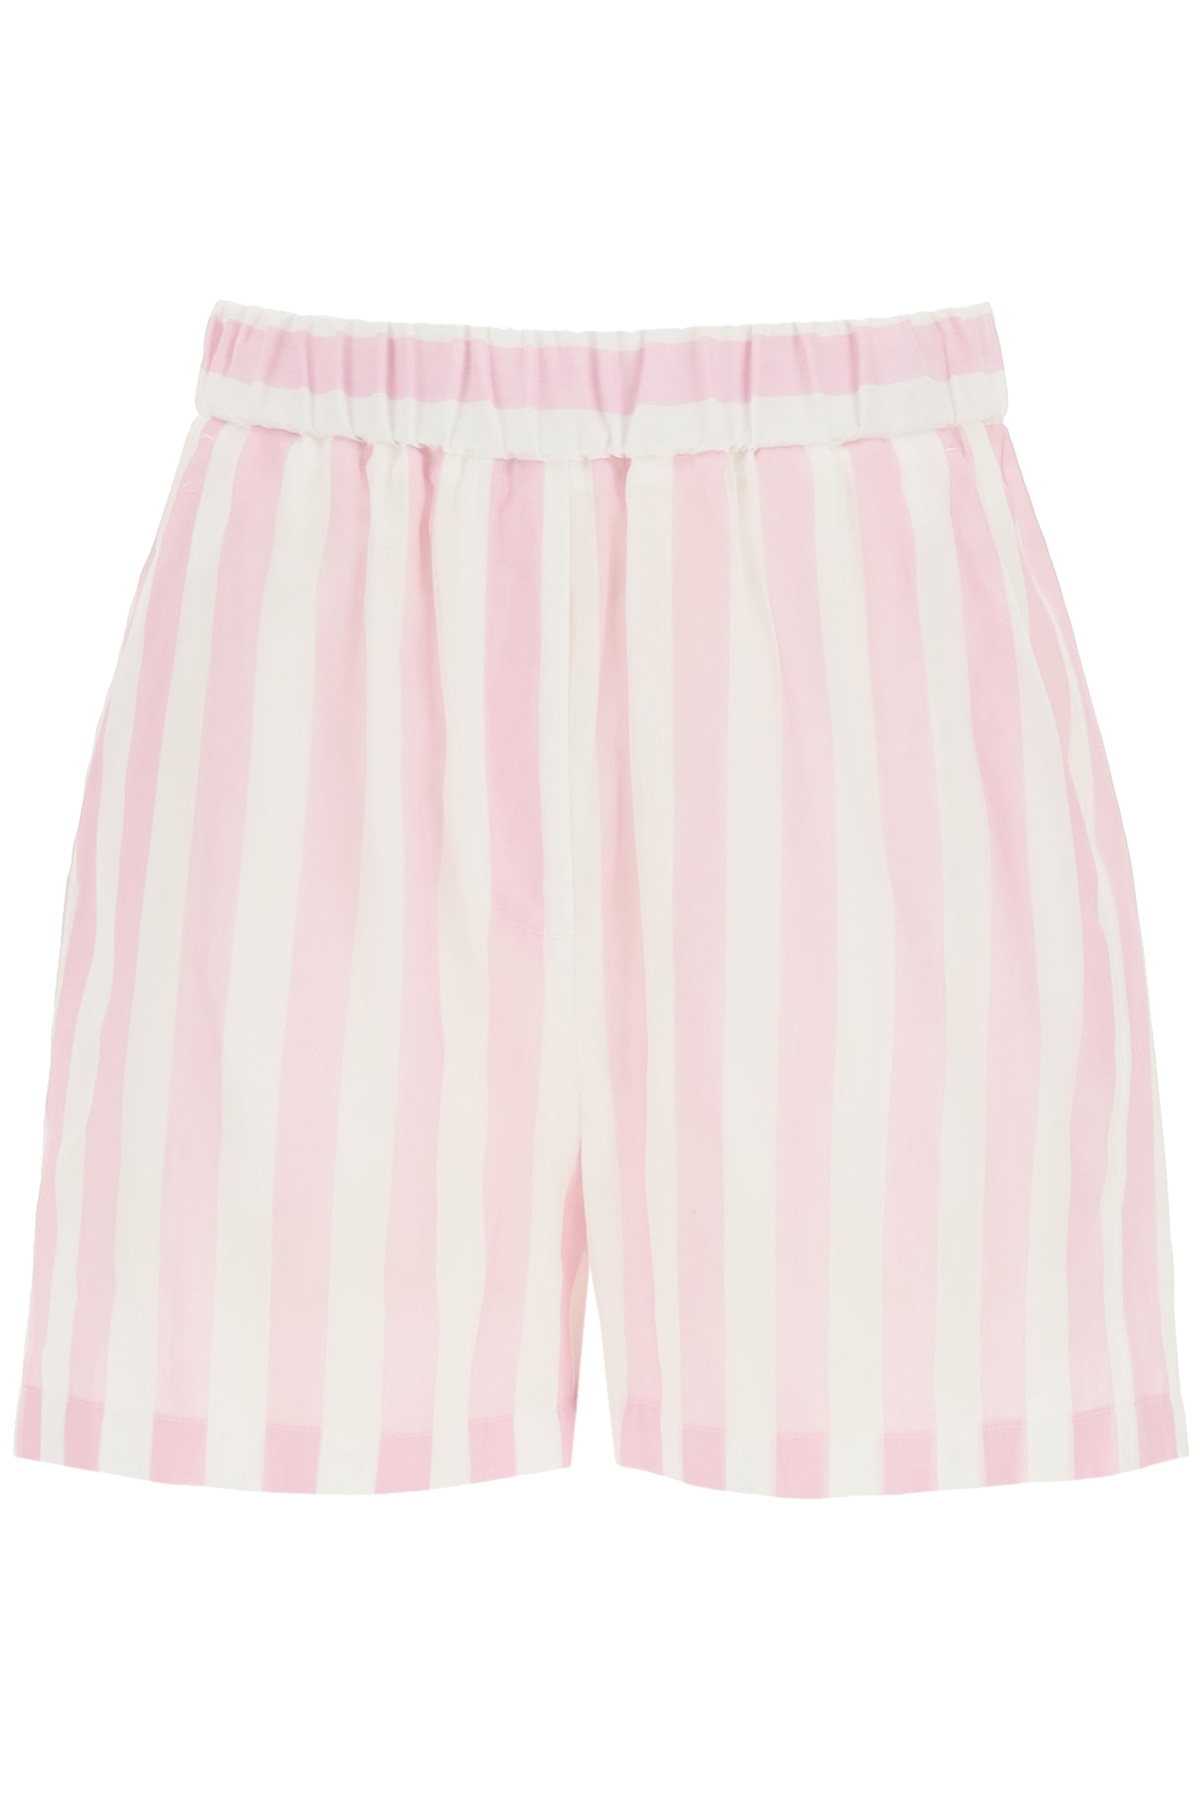 Msgm Striped Shorts In Pink,white